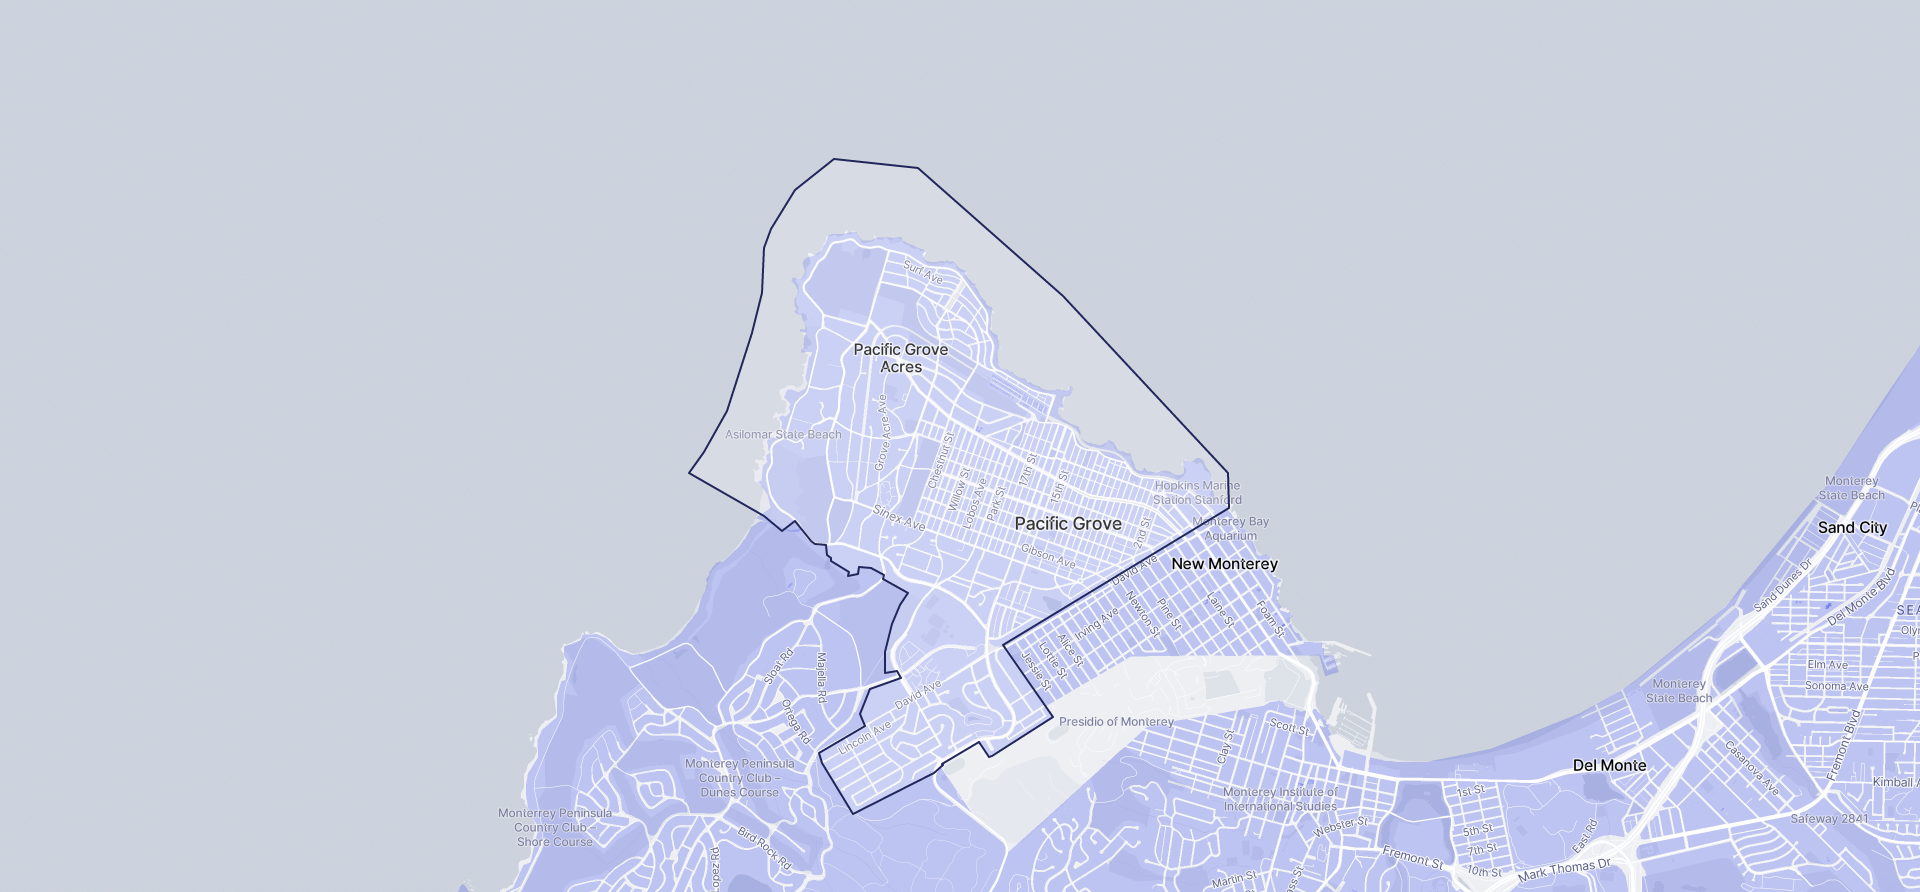 Image of Pacific Grove boundaries on a map.